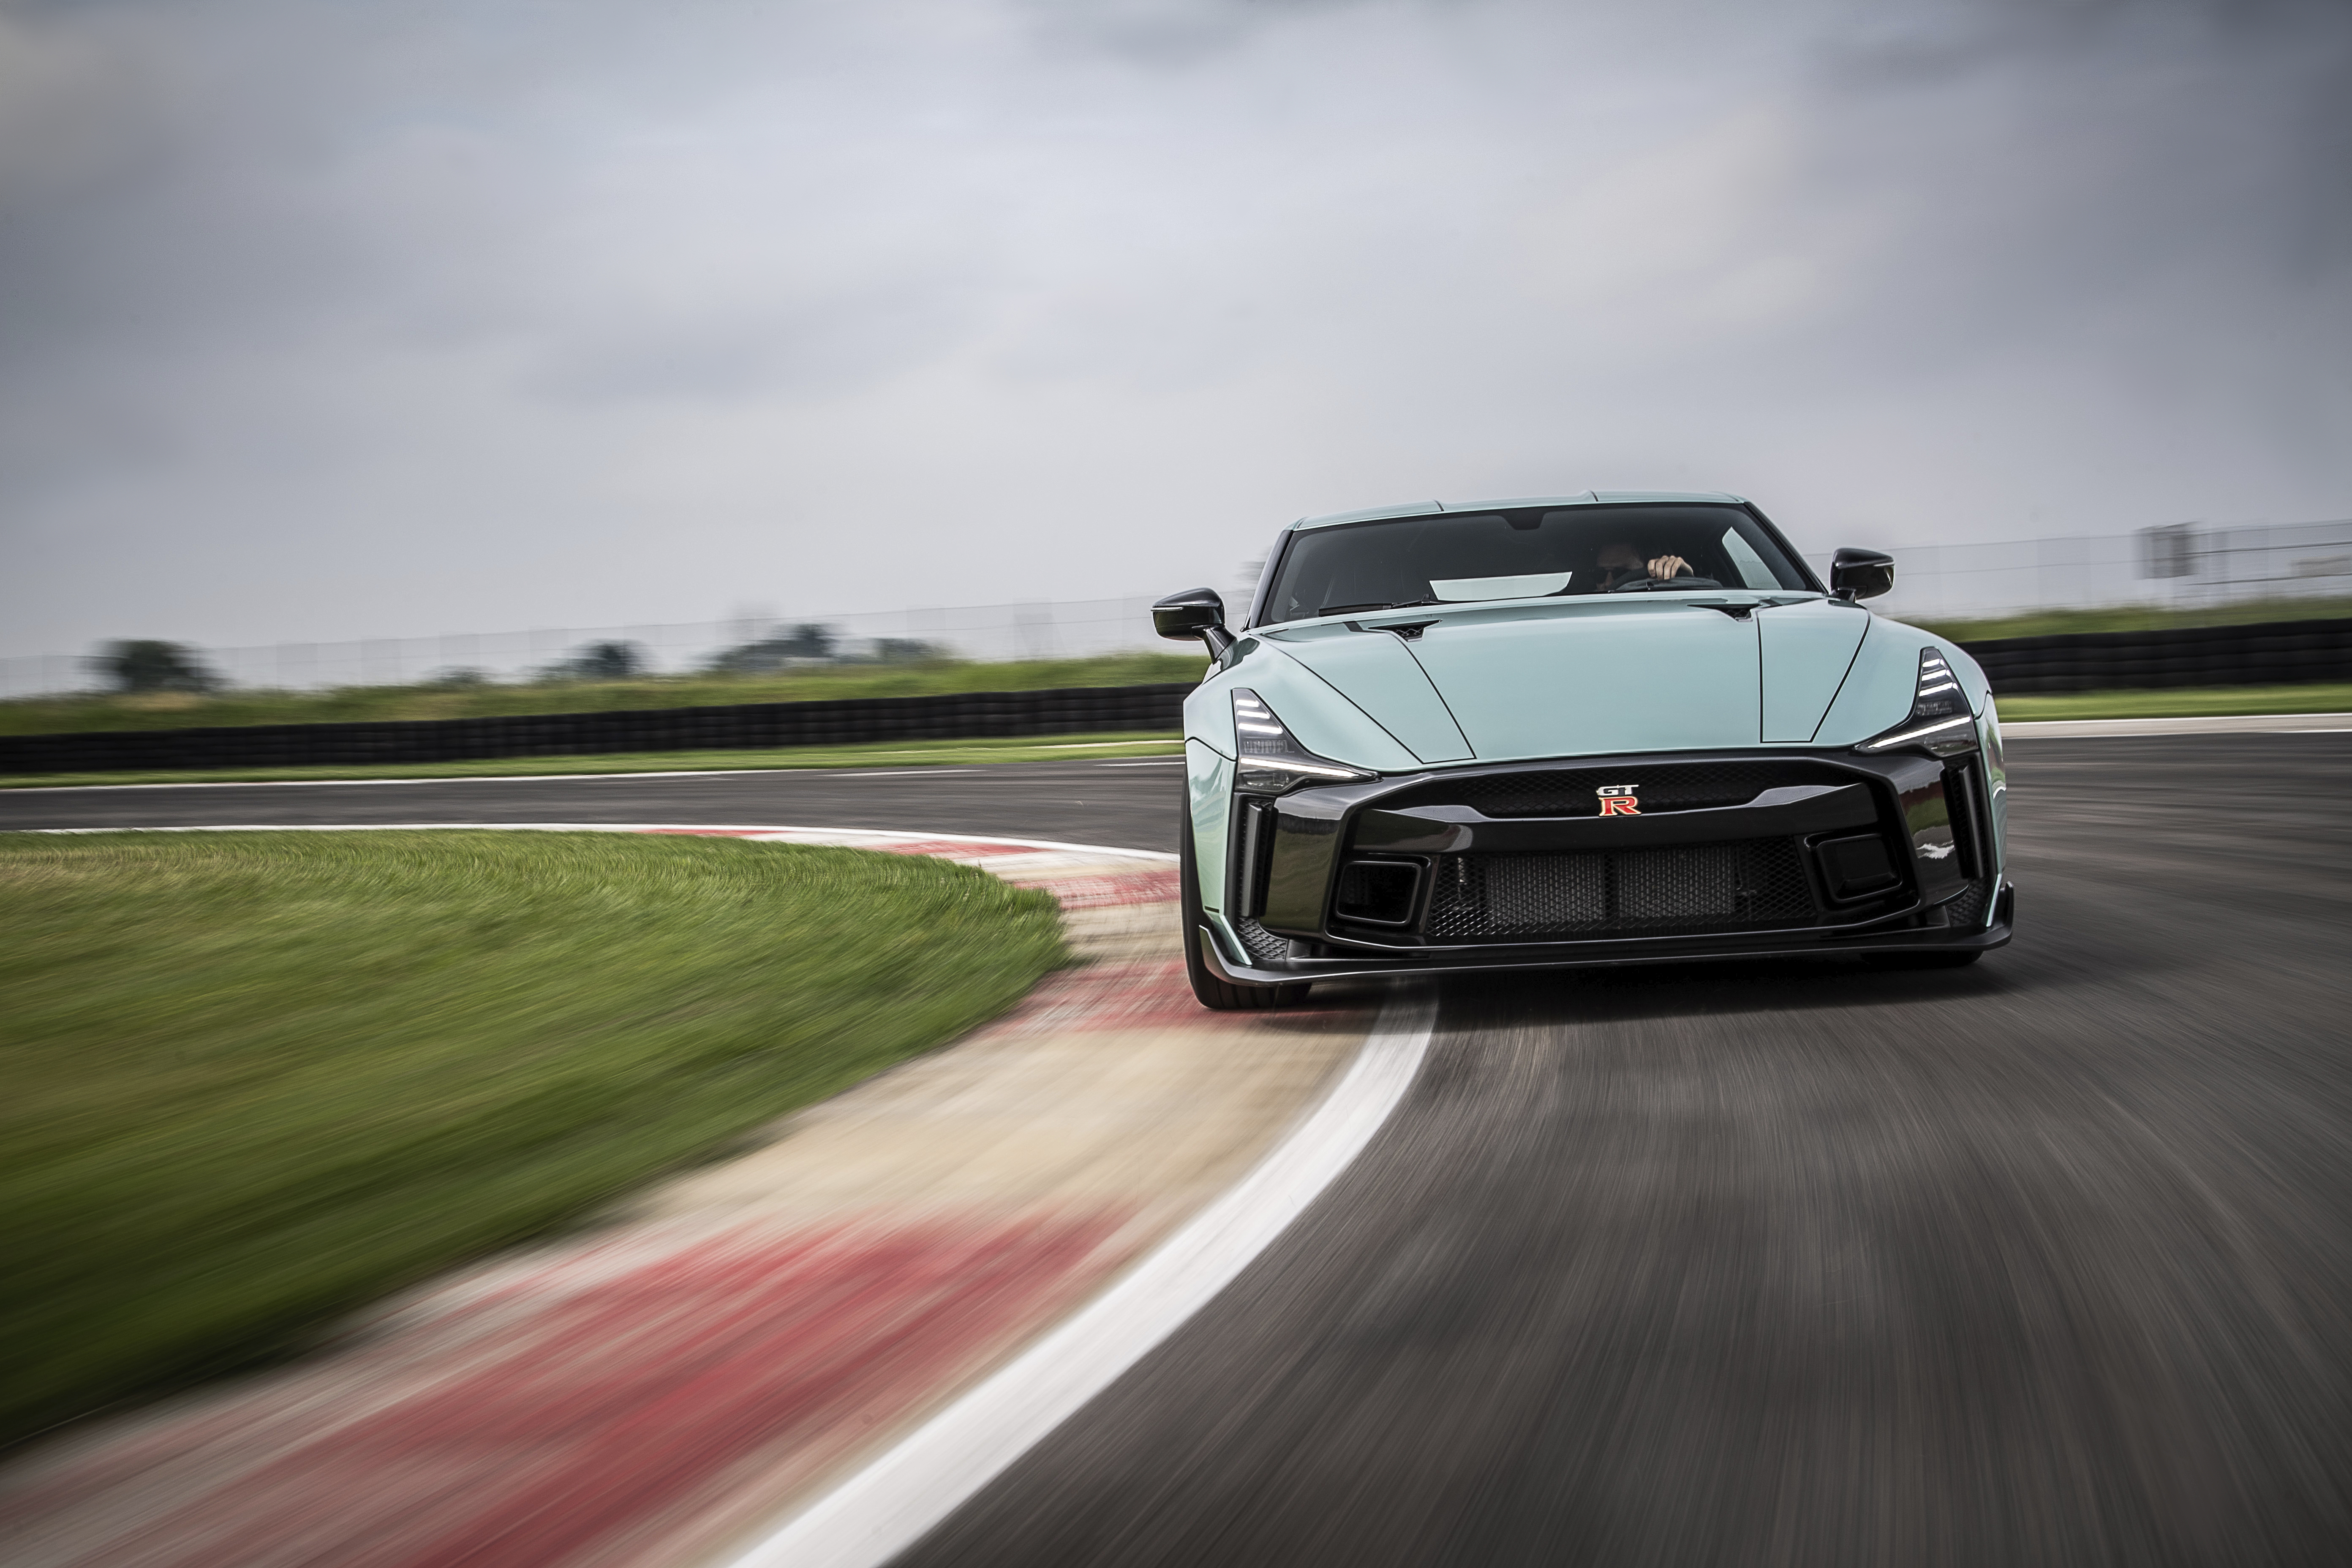 Nissan has been putting the production version of the Nissan GT-R 50 through its paces at the Tazio Nuvolari circuit in Italy